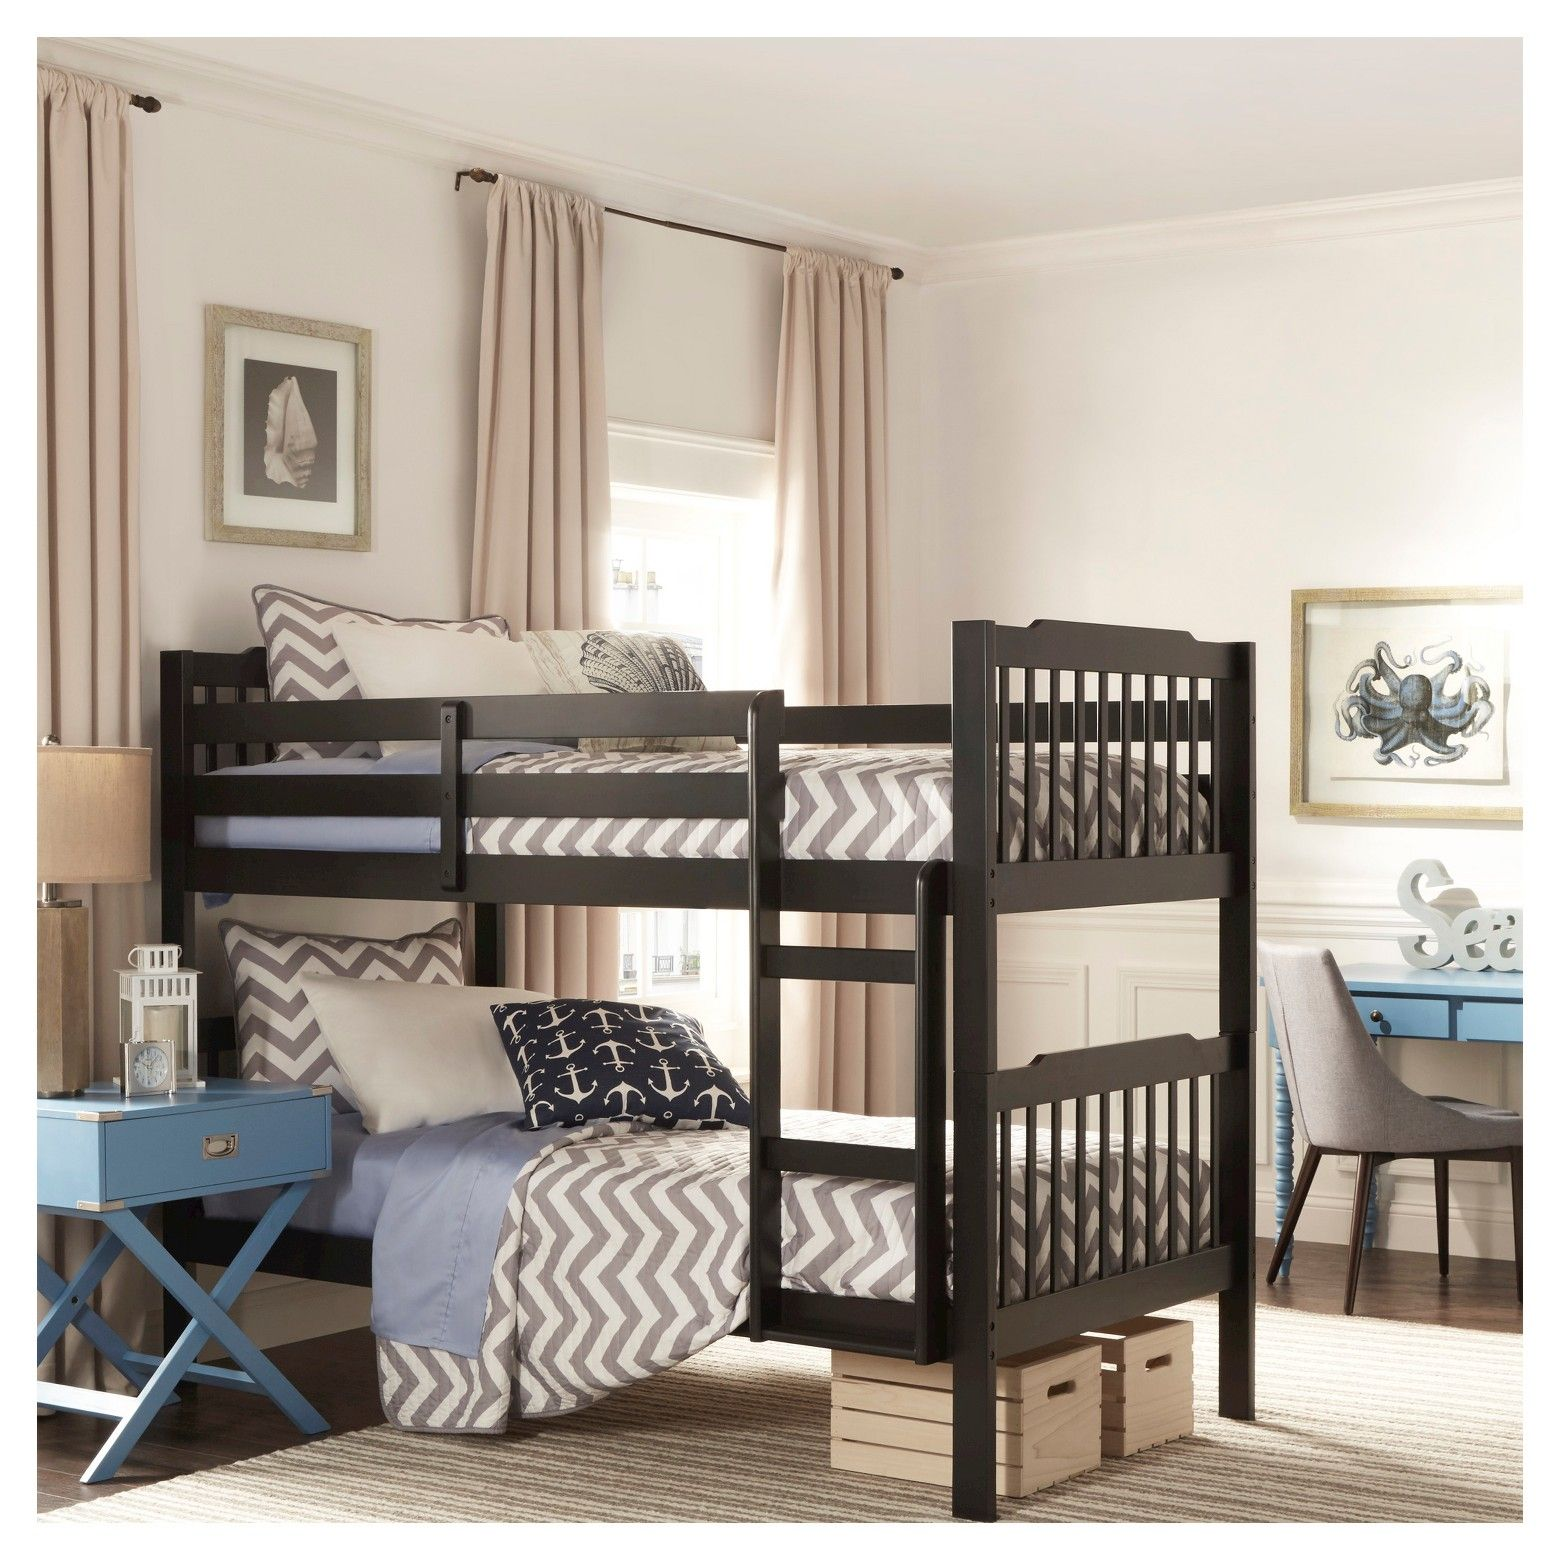 Add the perfect addition to your little cuties room with the Nacona Mission Bunk  Bed!